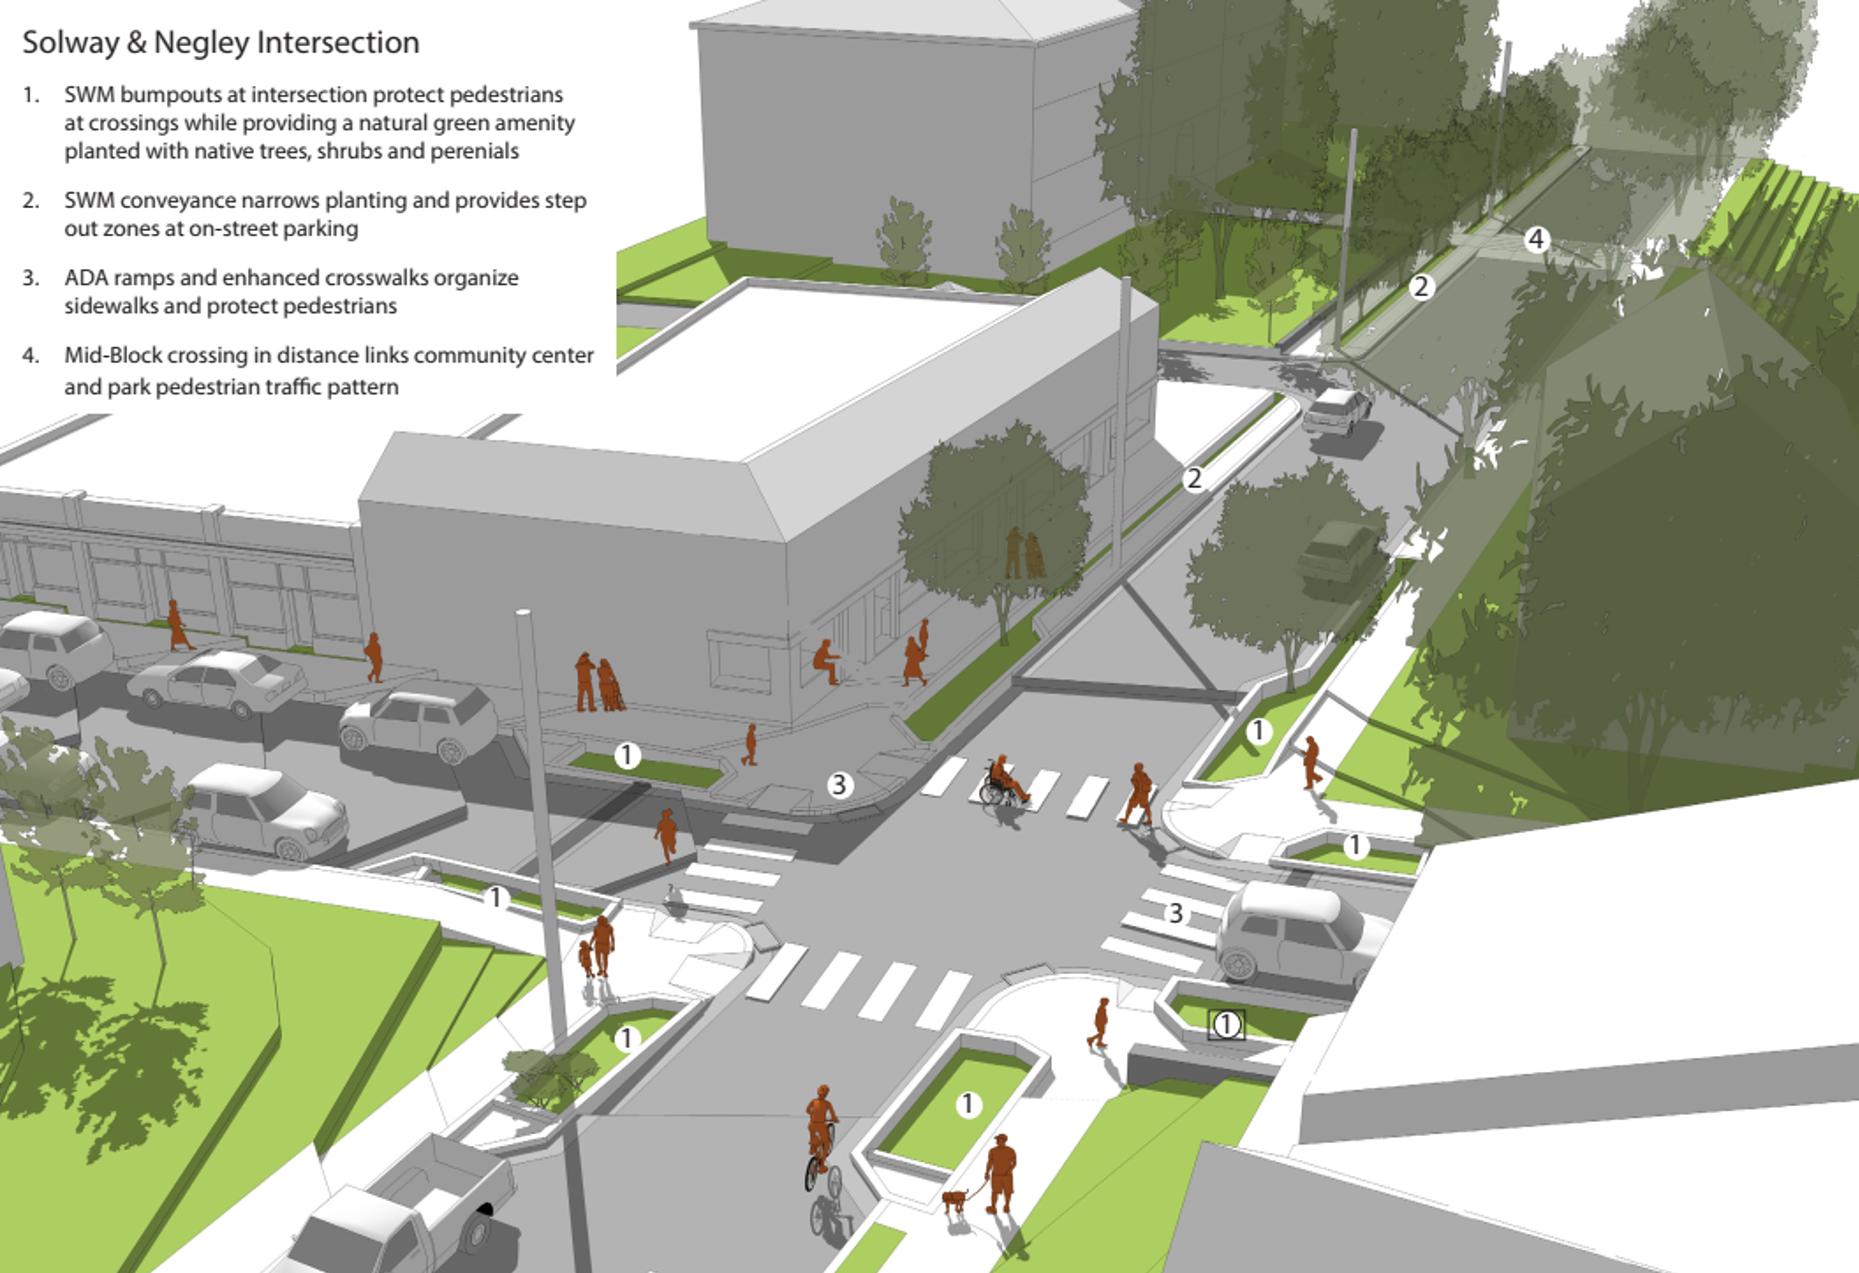 Rendering of proposed stormwater bumpouts, ramps, and crosswalks at Solway and Negley intersection